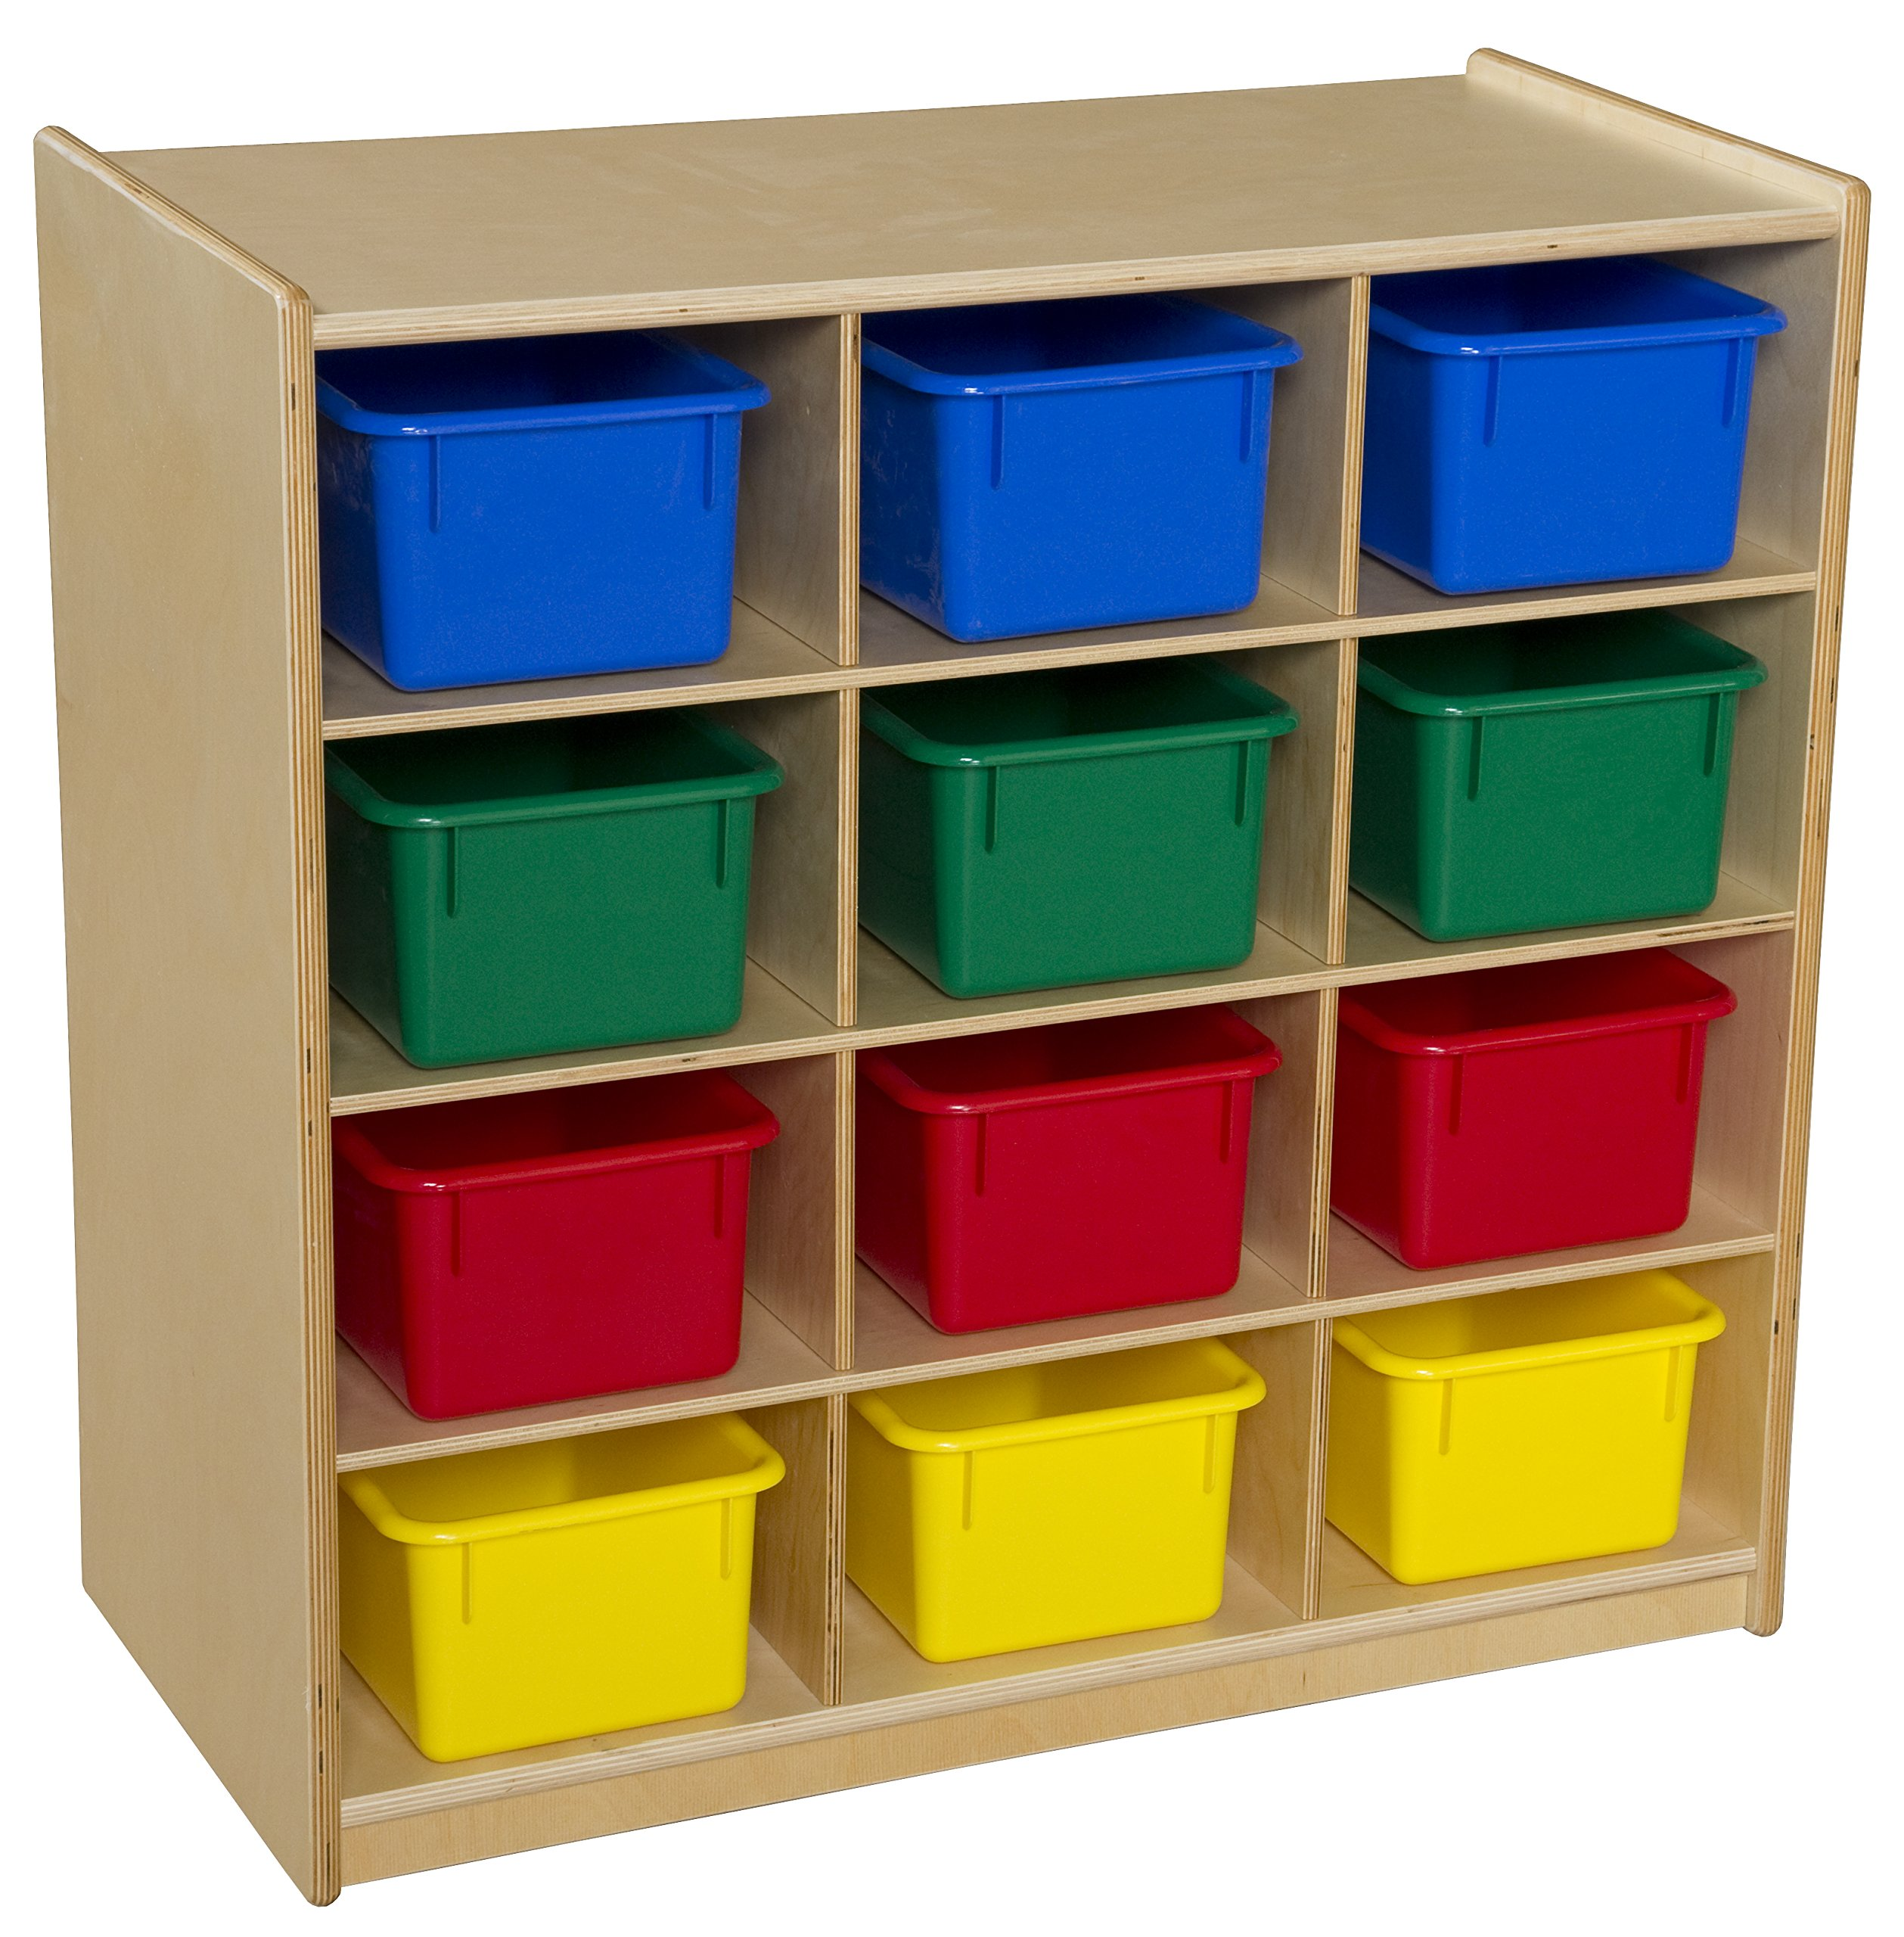 Wood Designs 16123 Cubby Storage with Assorted Trays